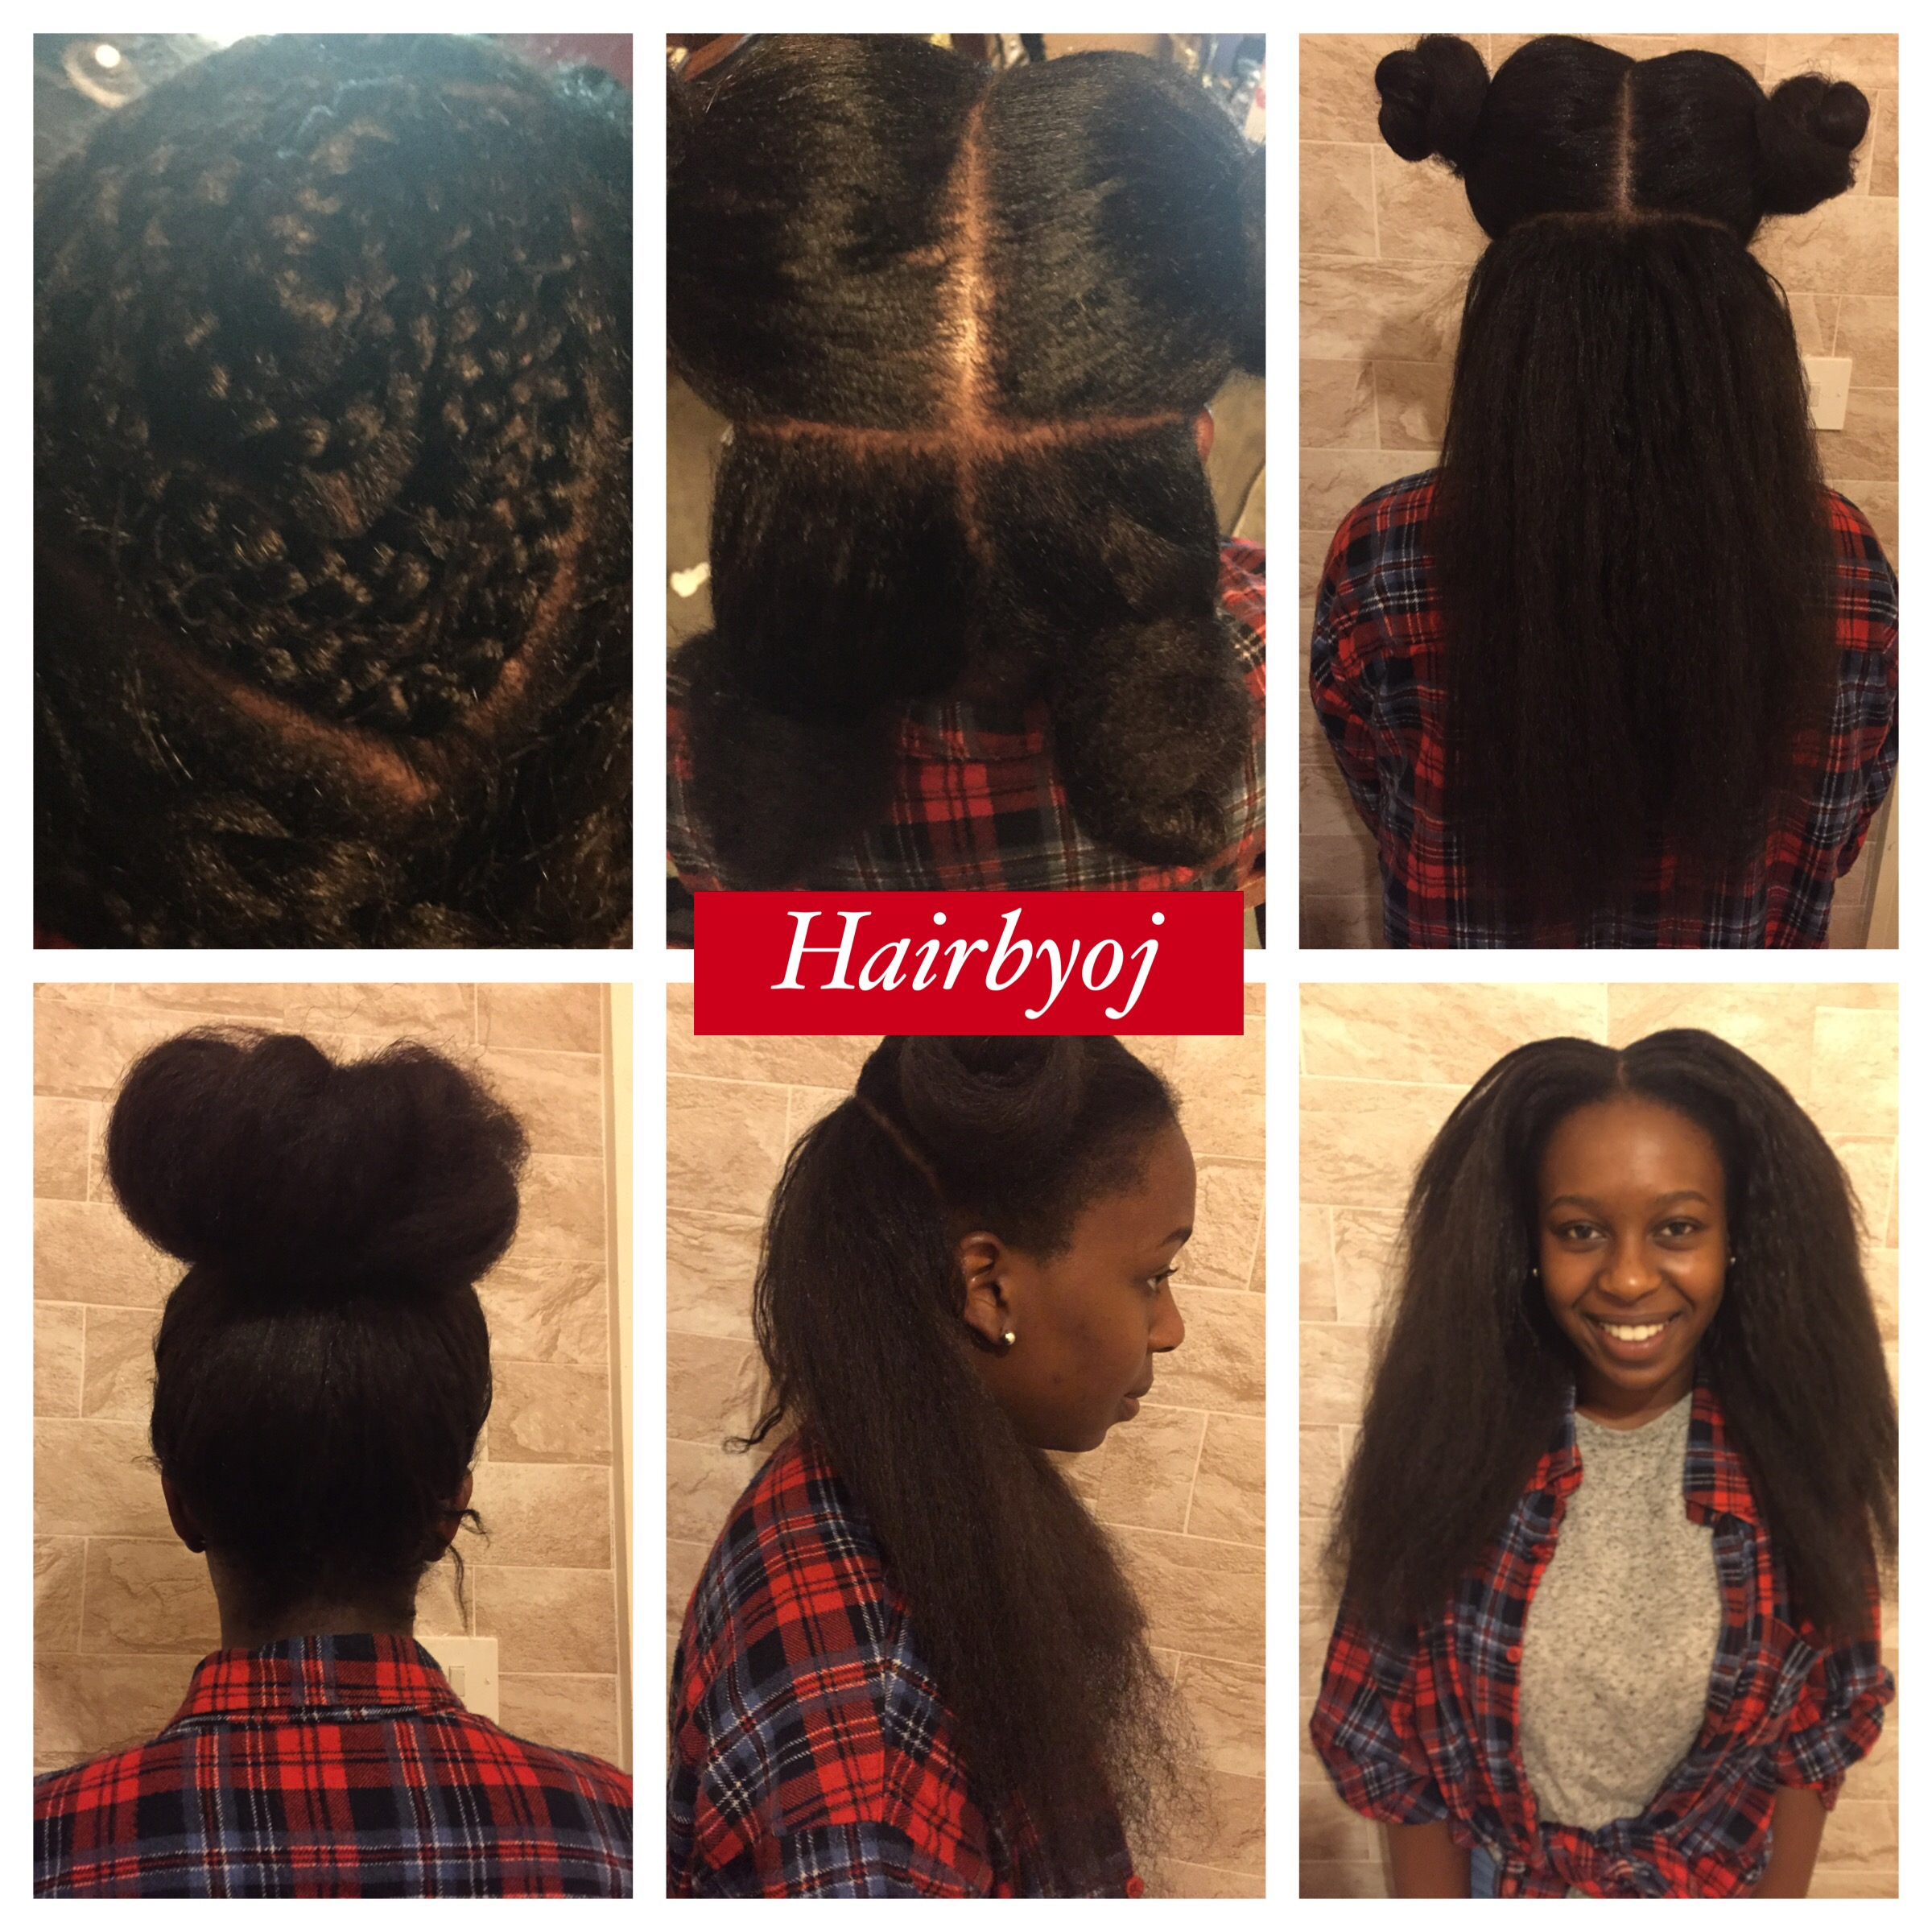 Crochet Hair Kinky Straight : ... vixen crochet braids with Marley hair and leave out ? hairbyoj